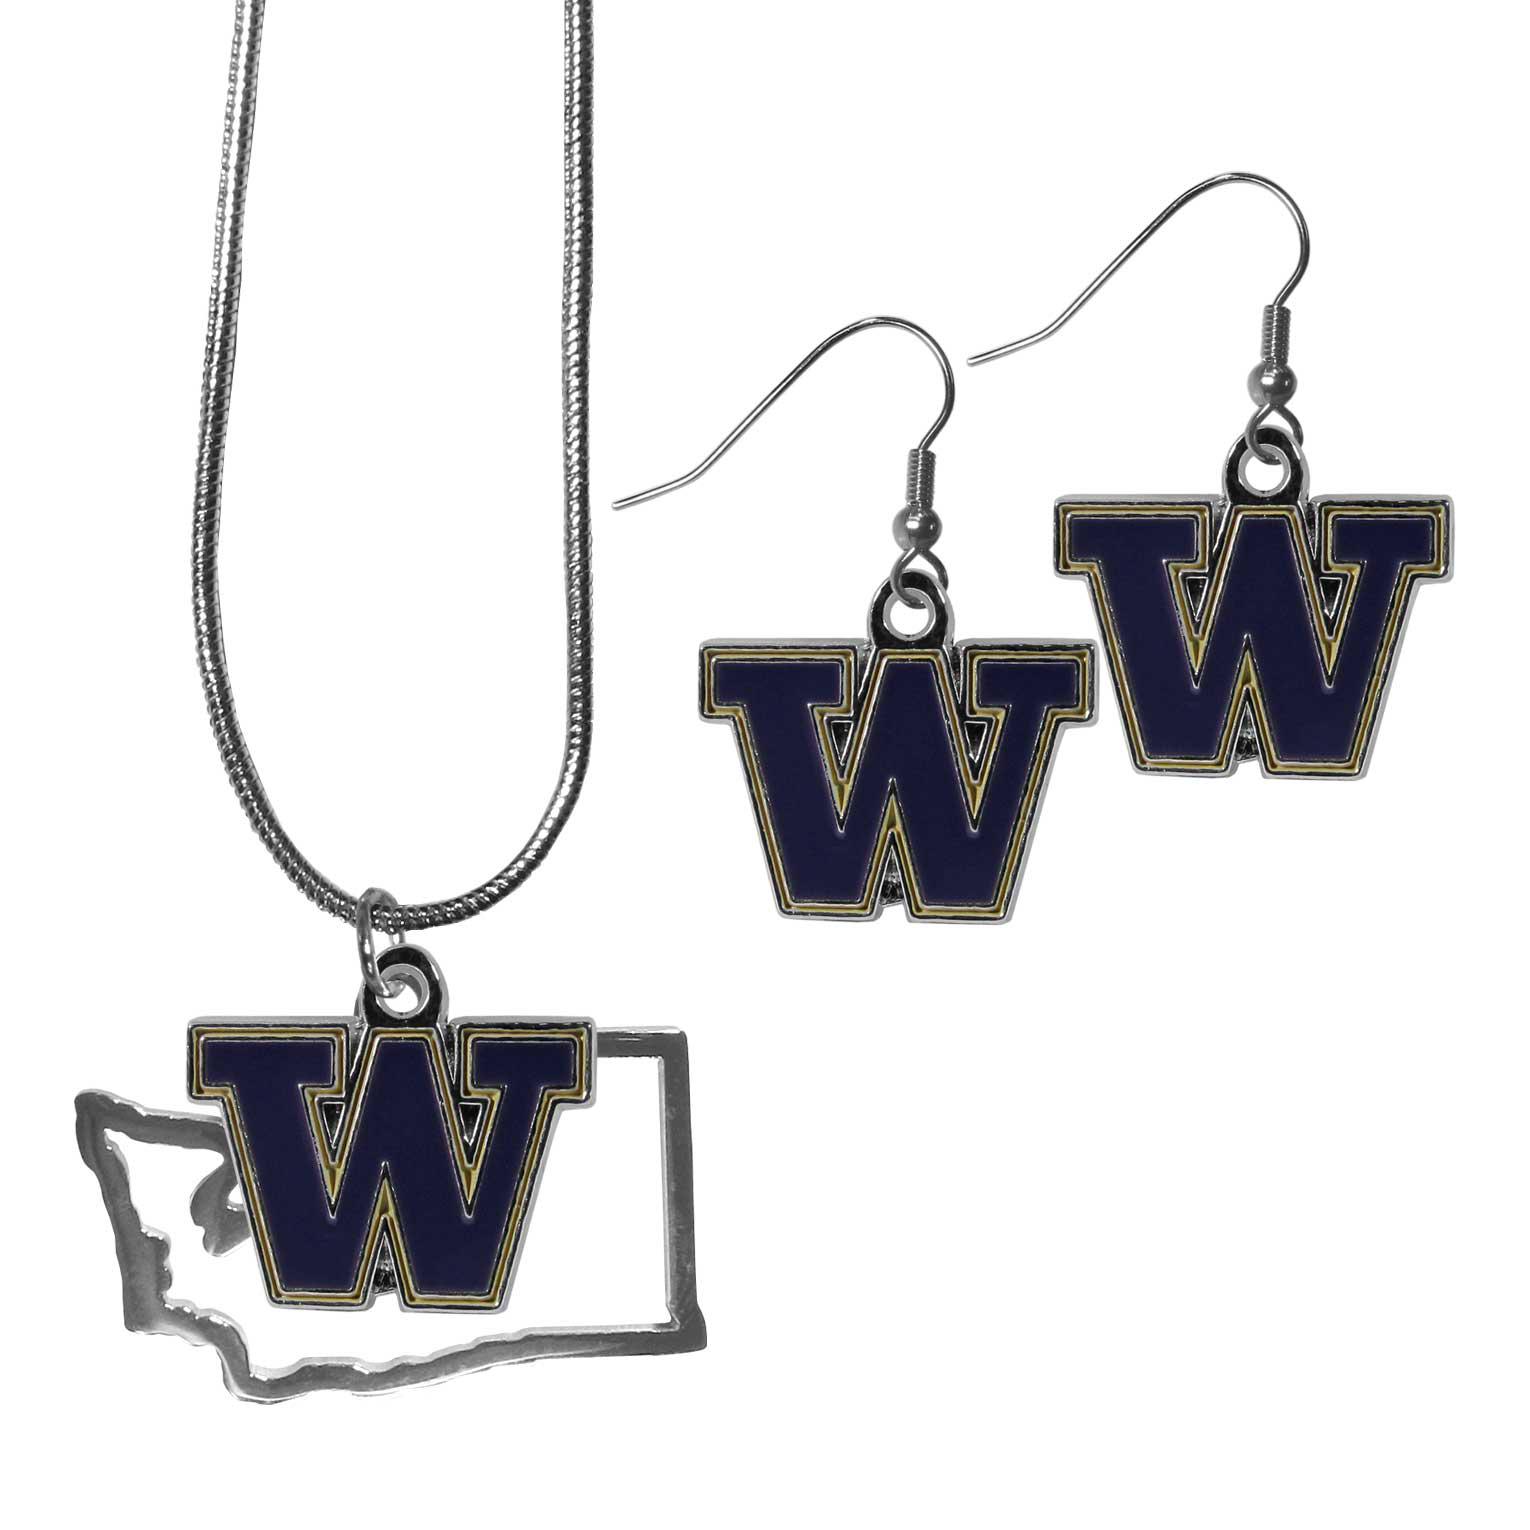 Washington Huskies Dangle Earrings and State Necklace Set - Get in on the trend! State themes are a trend that just keeps getting more popular and this jewelry set takes the state style and give it a sporty twist with a Washington Huskies necklace that features an Arizona state outline charm paired with a beautiful team charm and matching team charm dangle earrings. The earrings feature hypoallergenic fishhook posts that are nickel free.